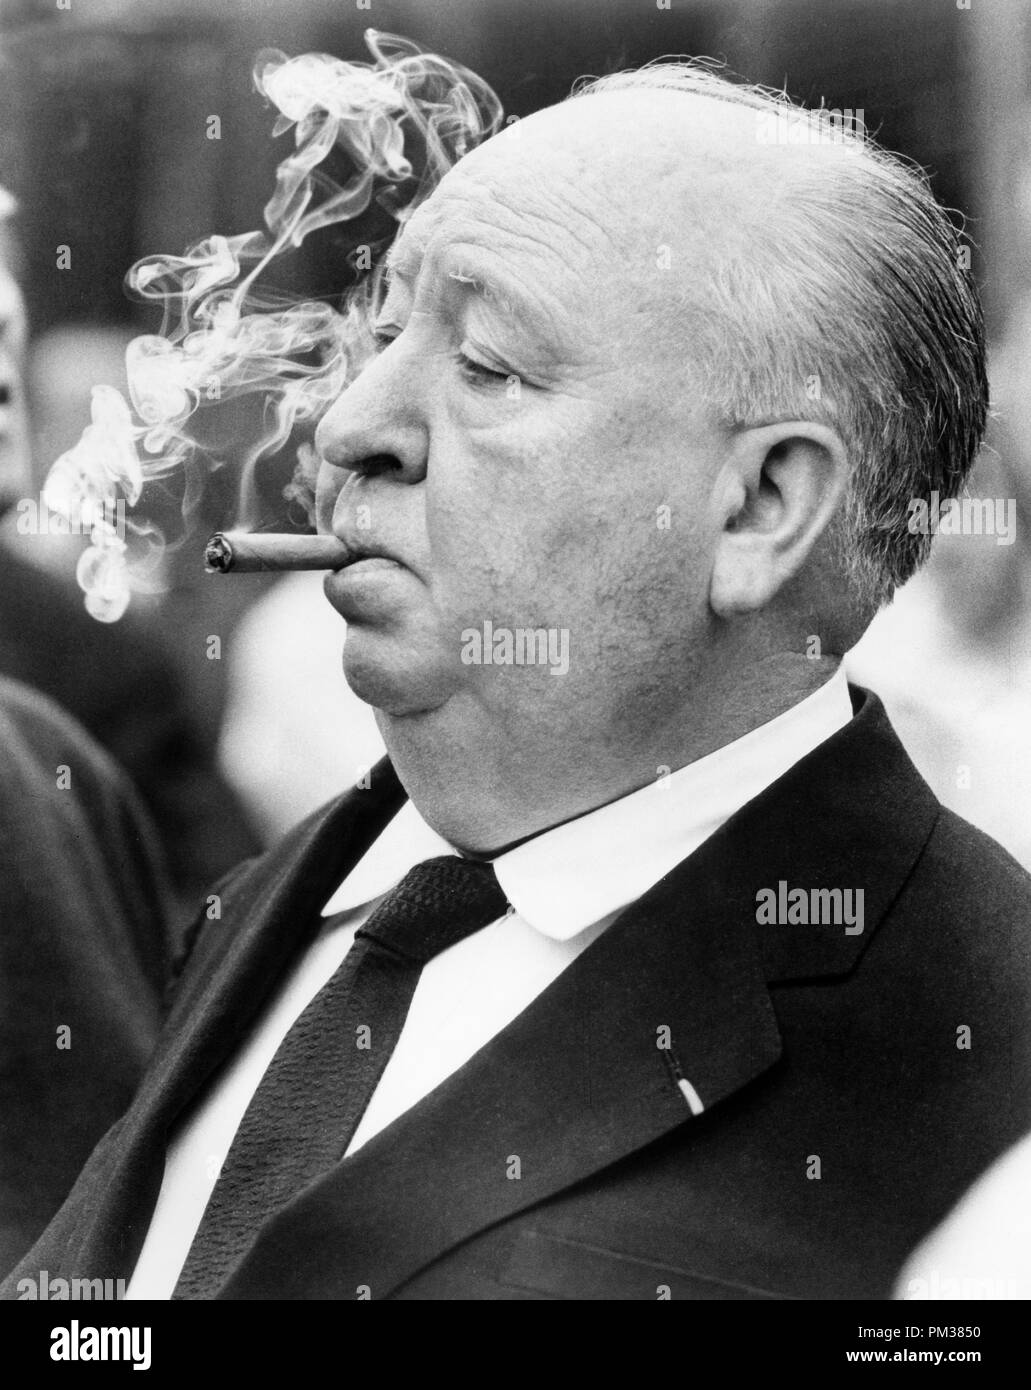 Alfred Hitchcock, 1972.  File Reference # 1154_001THA - Stock Image